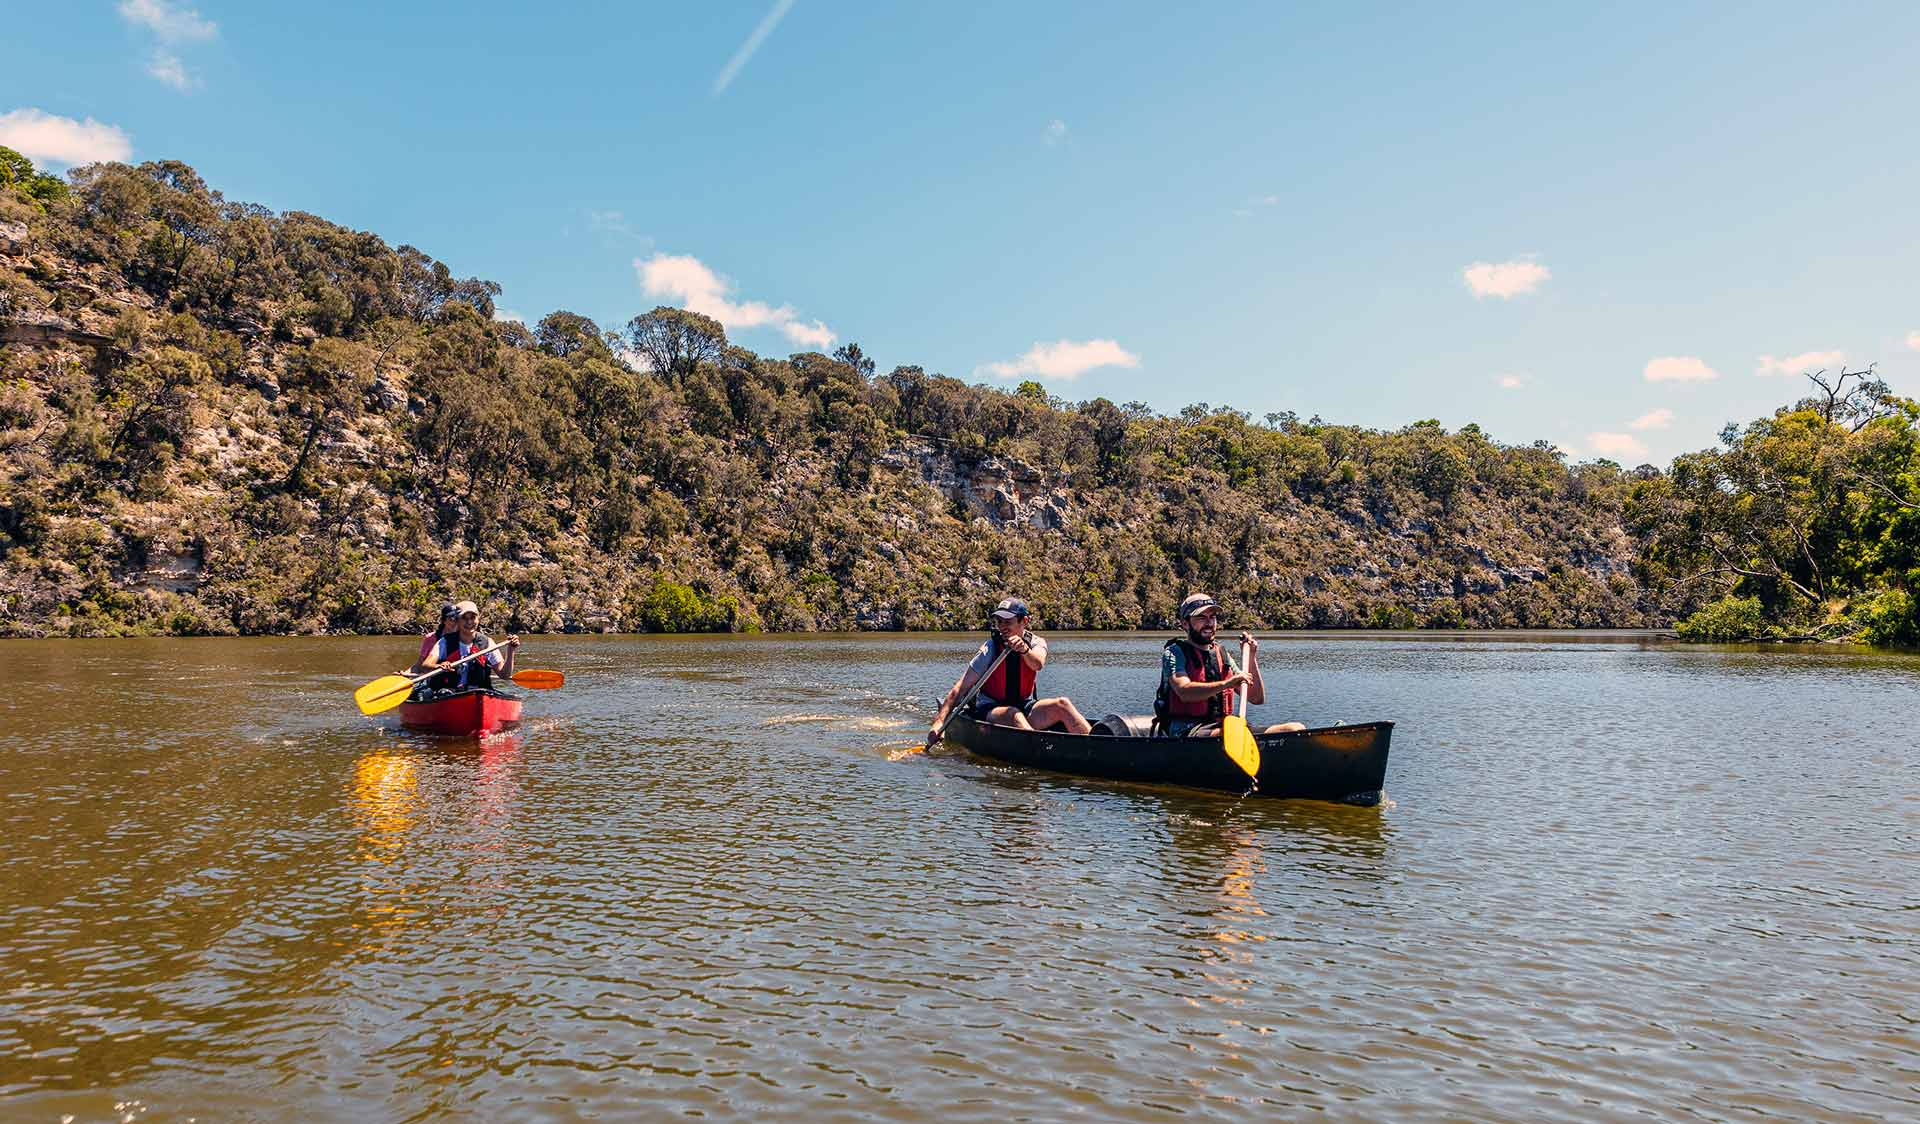 Four friend canoe down the Glenelg River in the Lower Glenelg National Park.